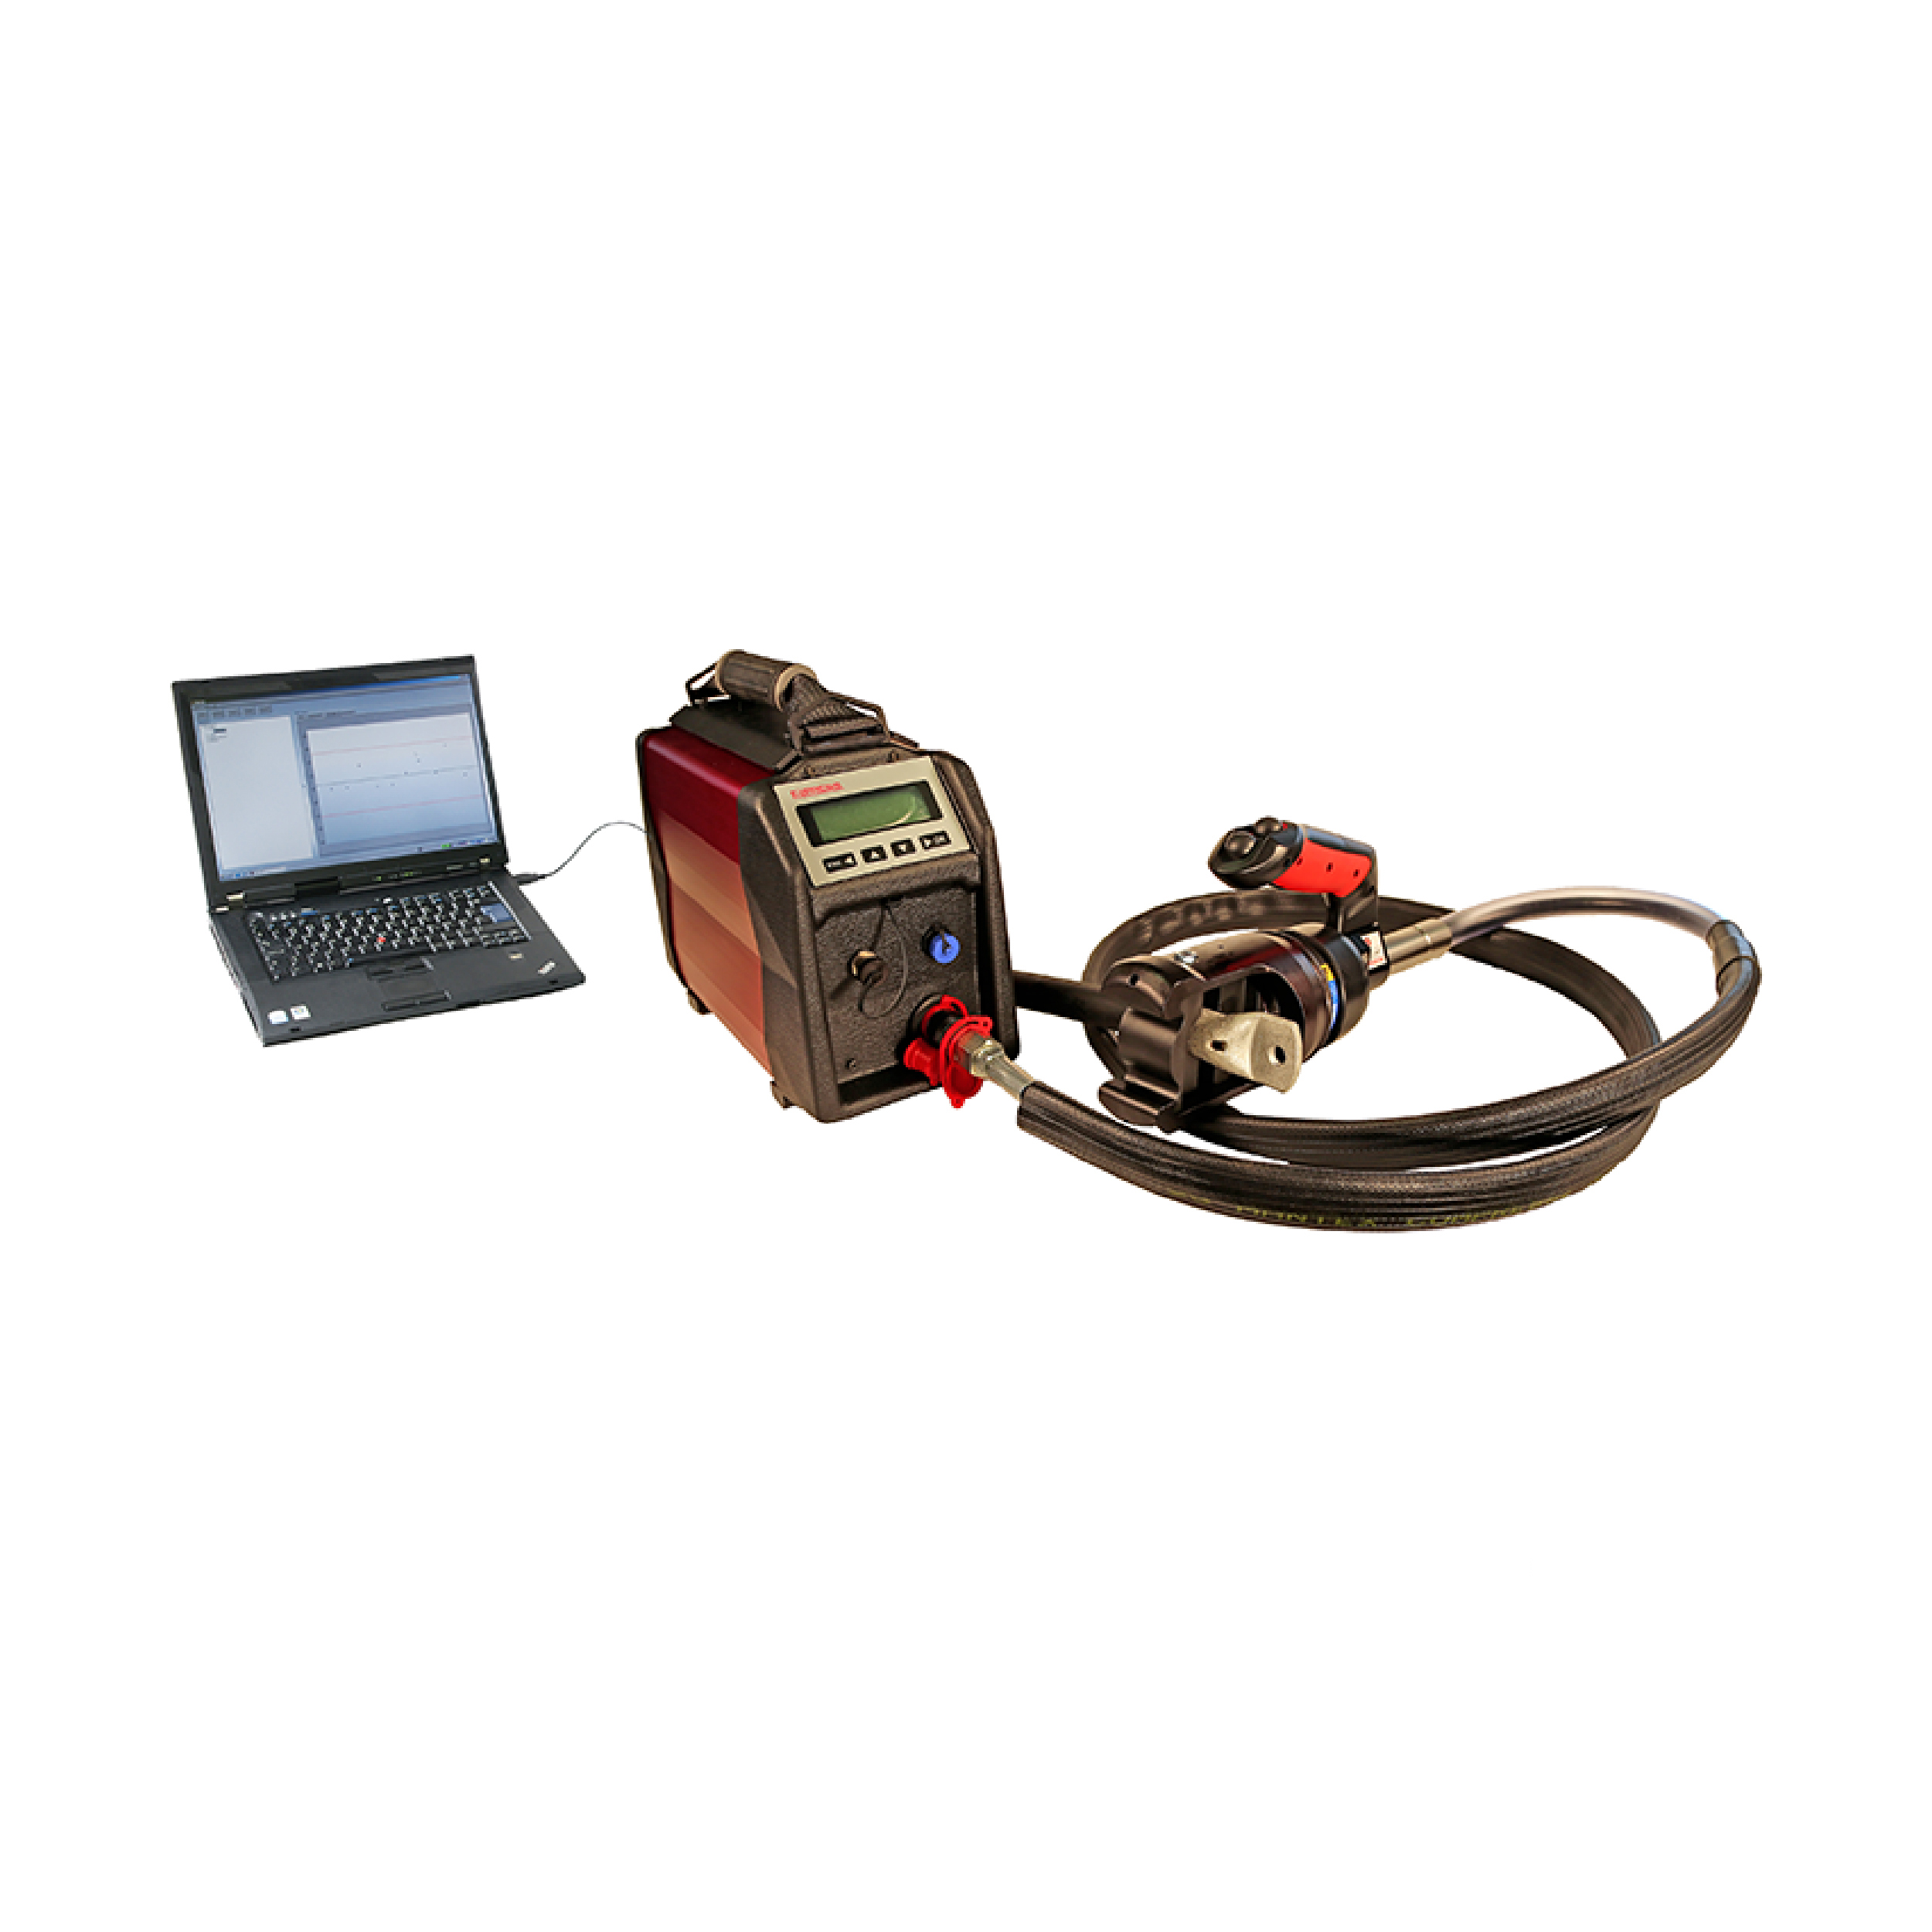 Elpress PS700 Analyzer - Crimping Analysis & System Calibration Software